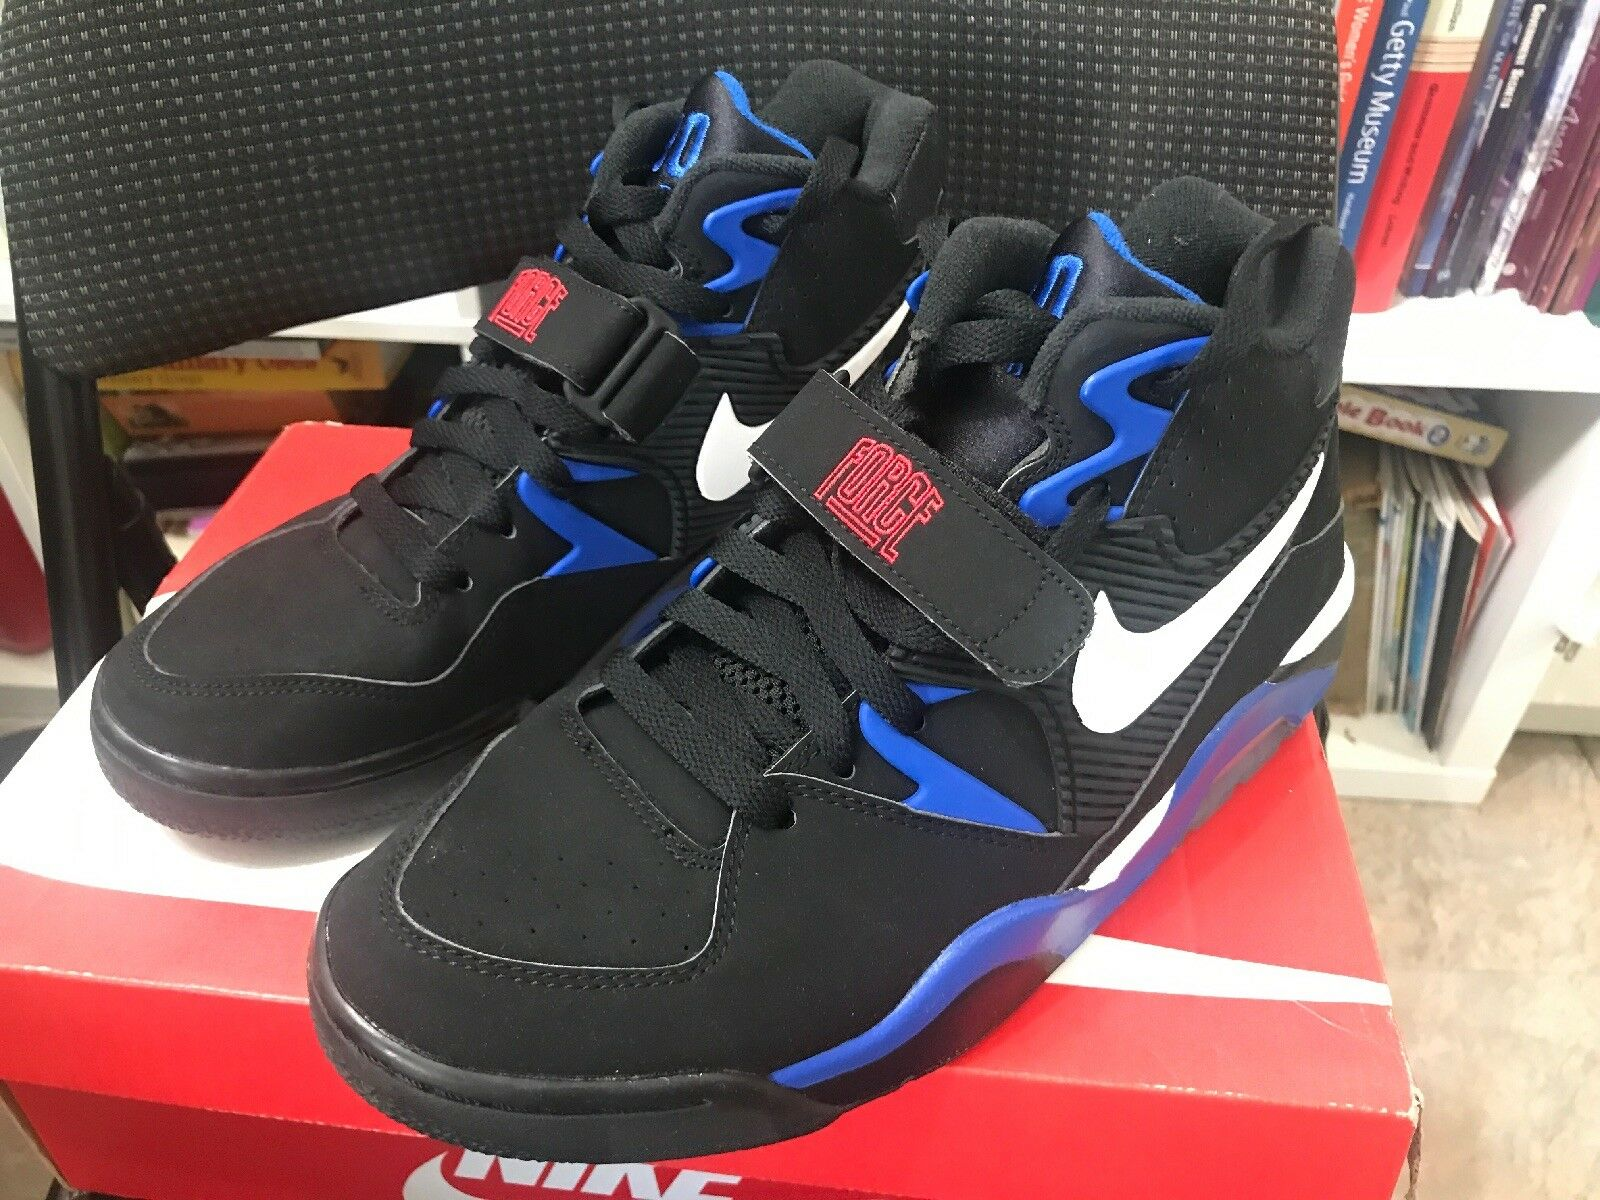 New Nike Air Force 180, Black White Red bluee Barkley OG shoes 310095 011 Size 8